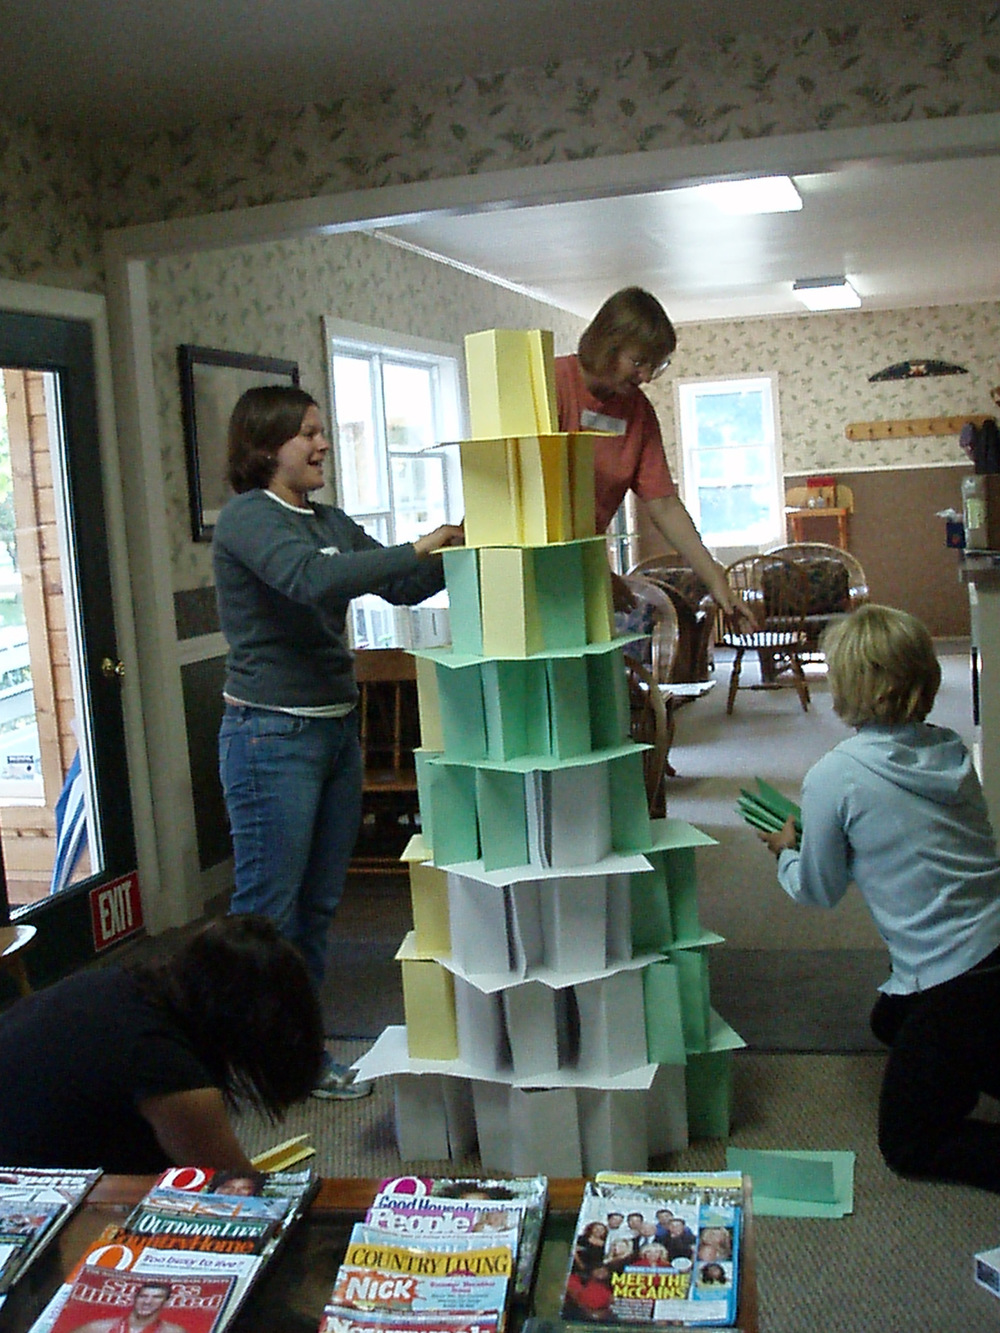 we always include some crazy team-building projects in our staff meetings. here the team was challenged to build the tallest tower they could design, from single sheet of paper.